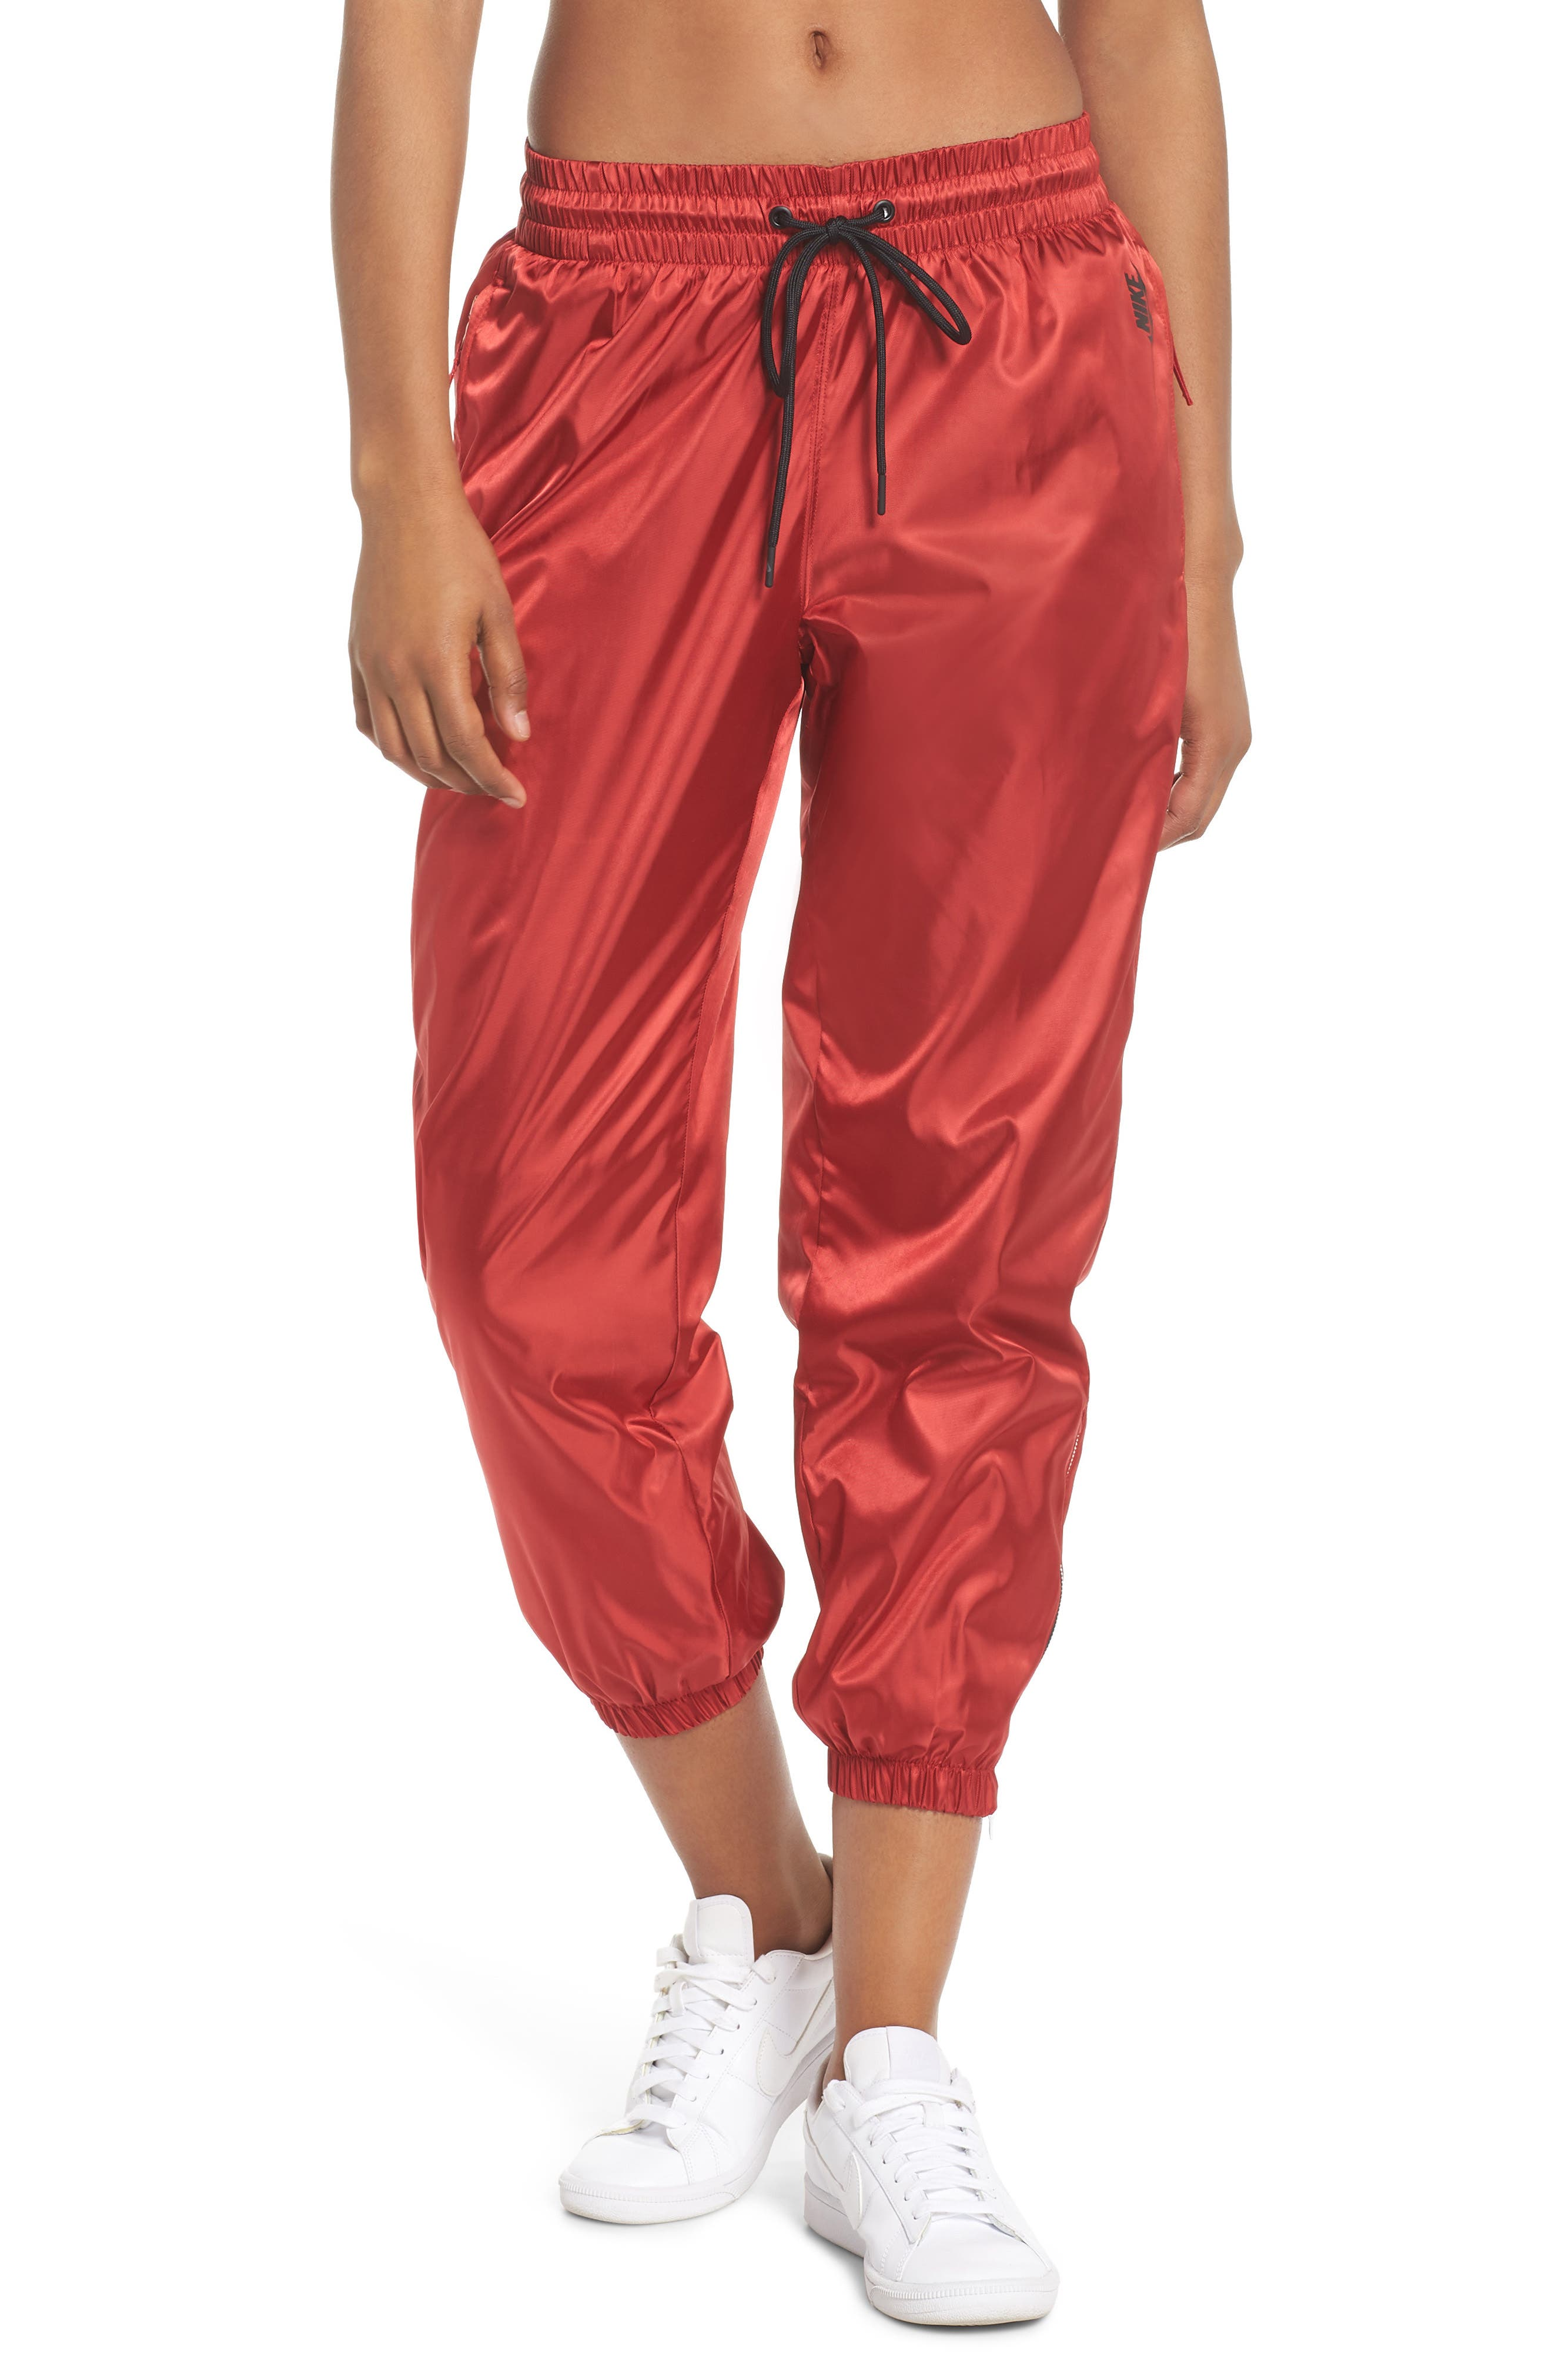 NikeLab Collection Women's Satin Track Pants,                         Main,                         color, Gym Red/ Black